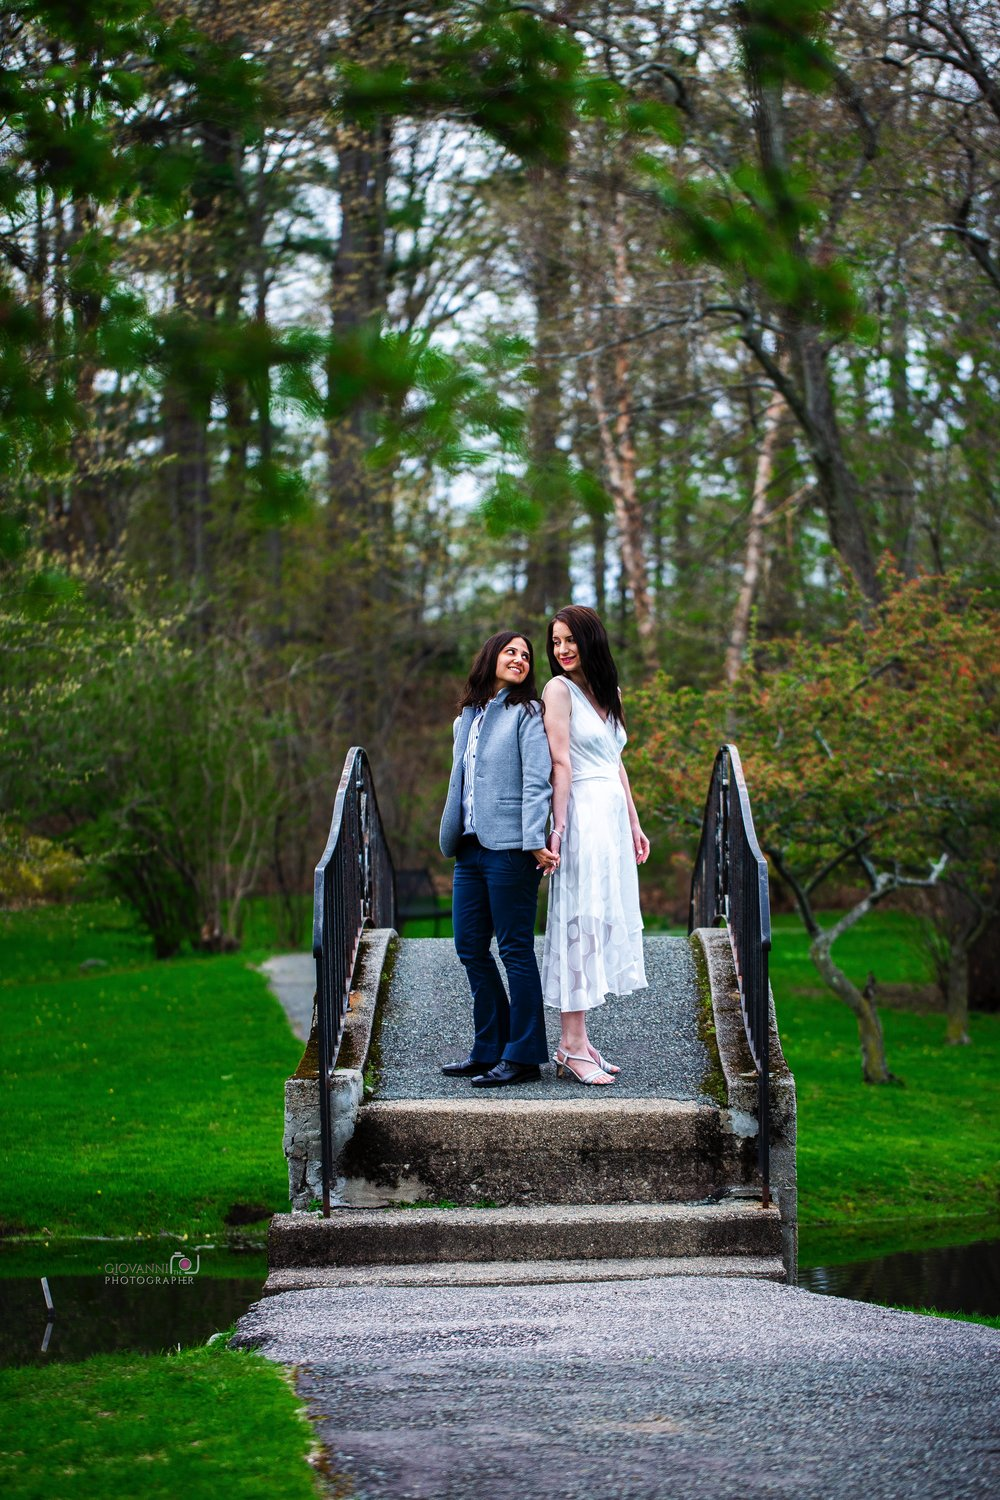 314A1418+Giovanni The Photographer+Best Boston Engagement Photography+Lars Anderson Park WM100.jpg